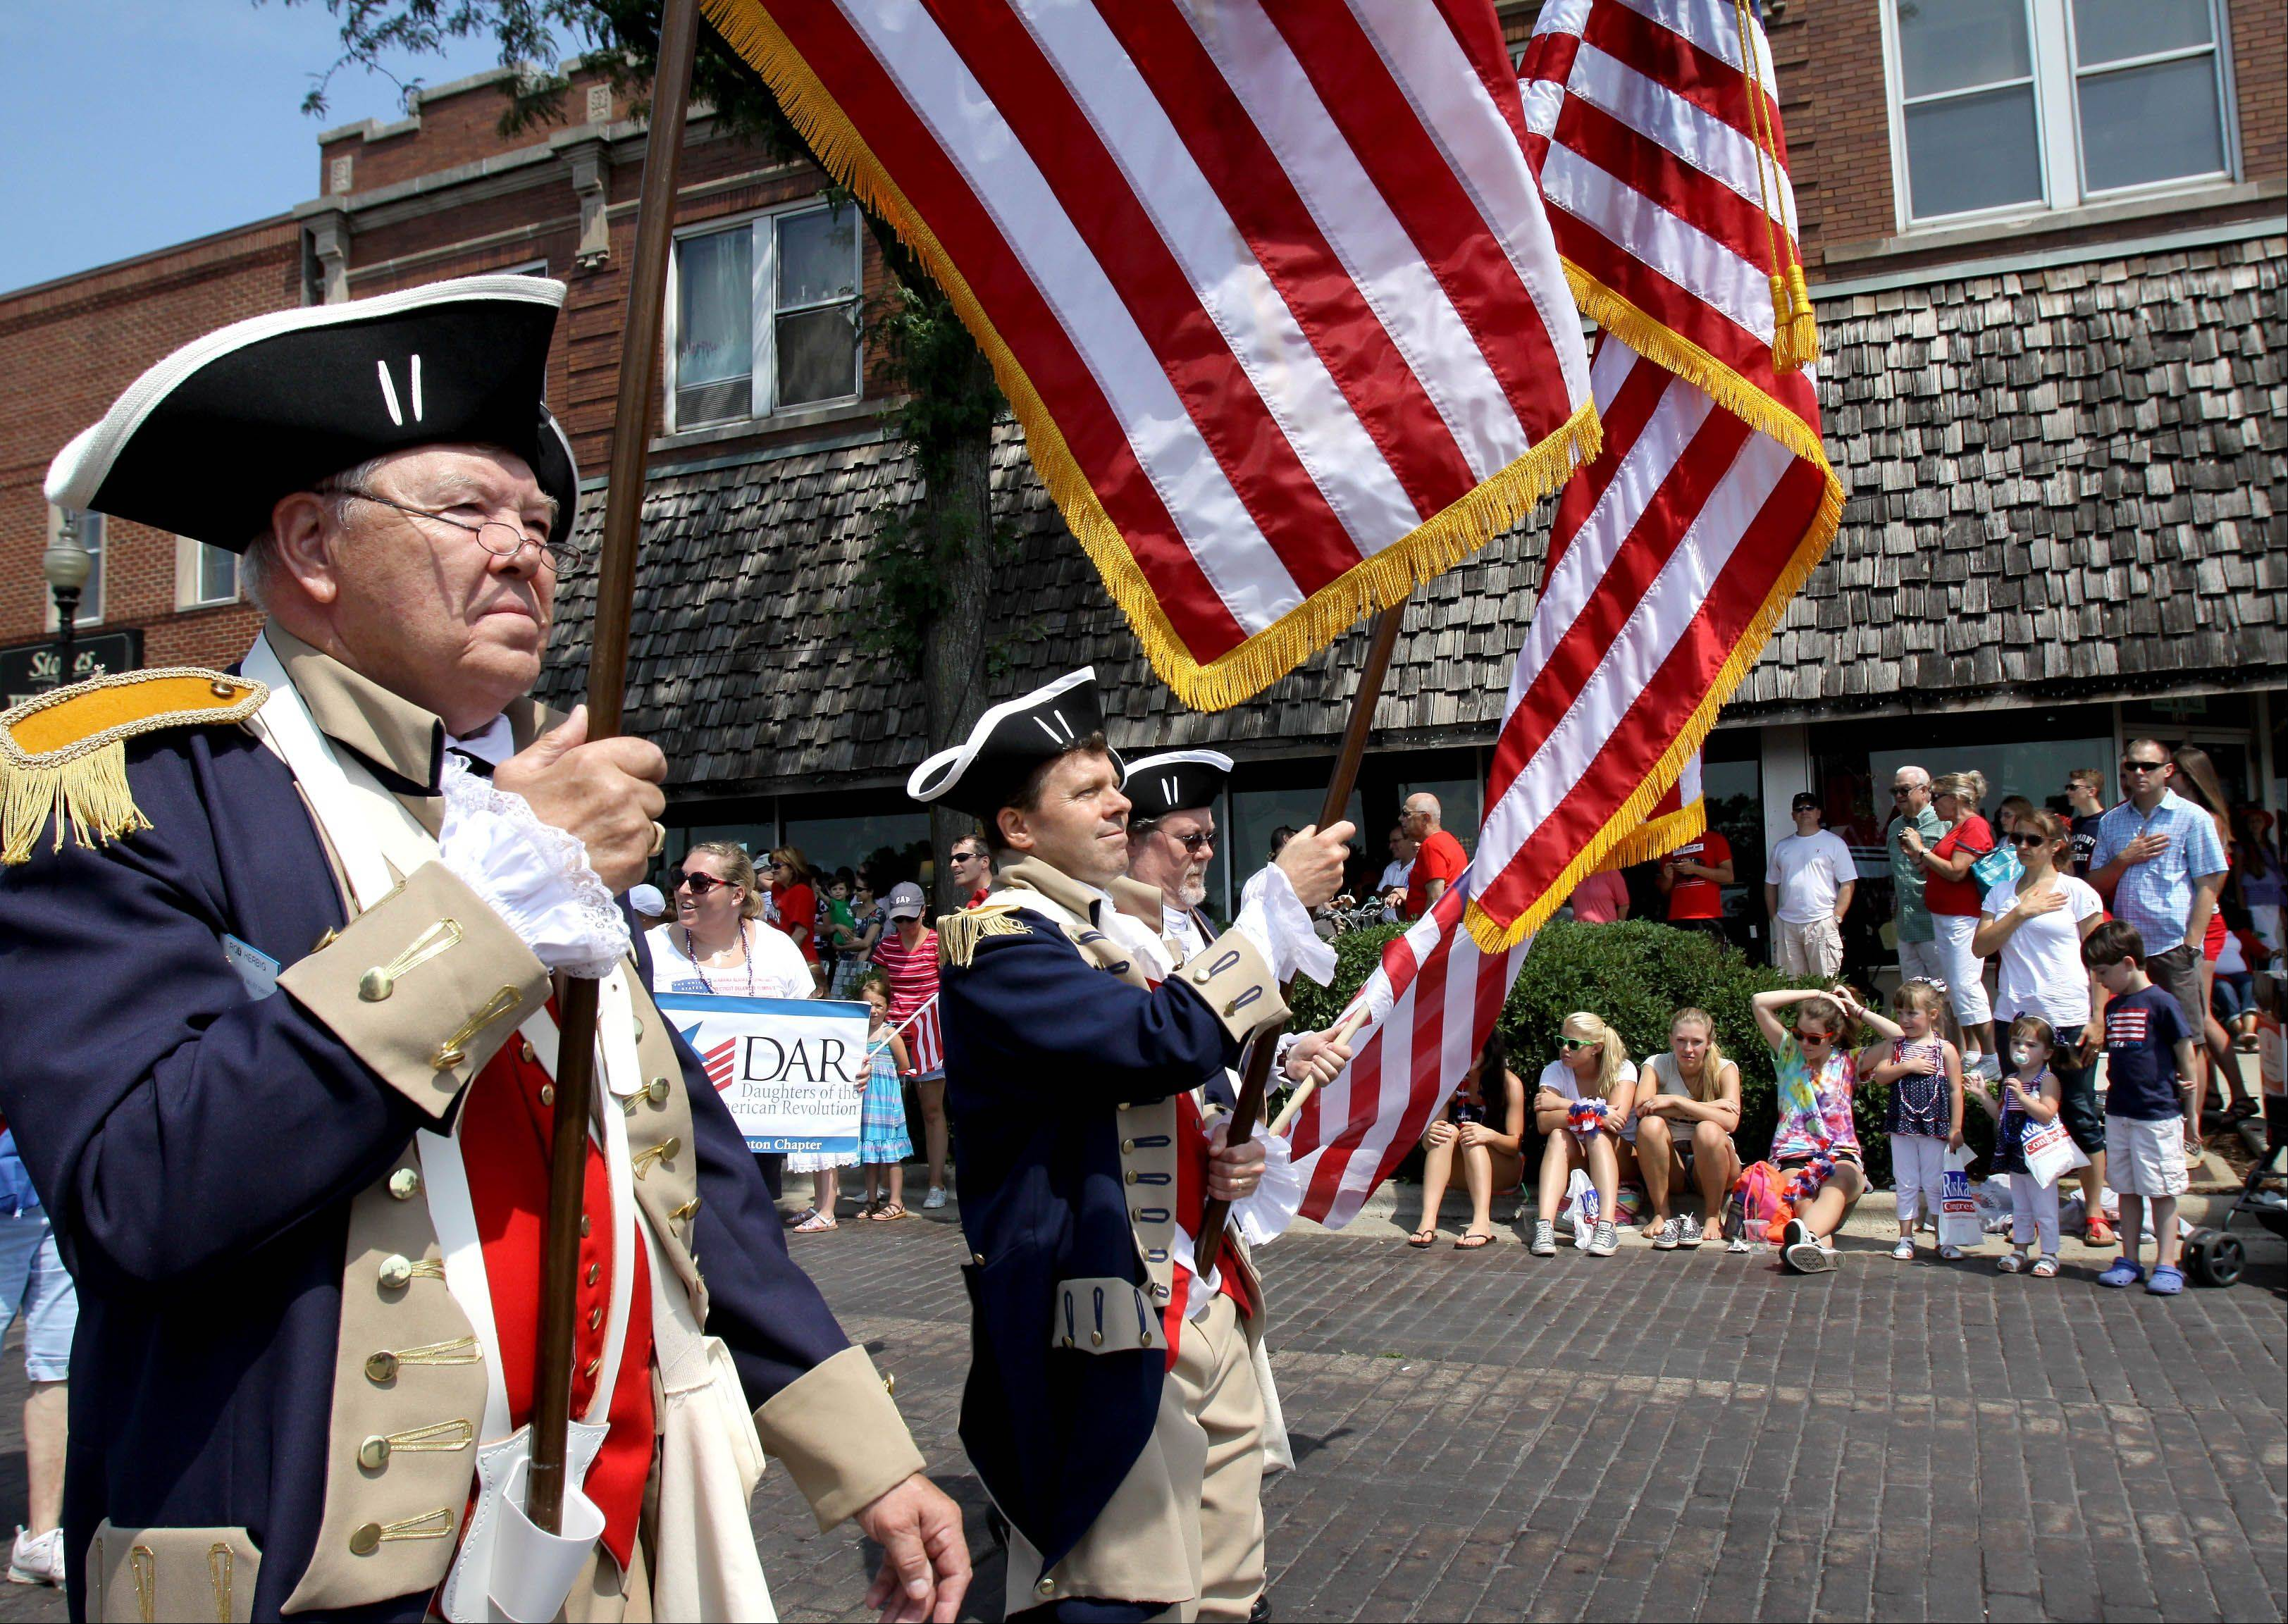 Members of the Sons of the American Revolution Illinois, march down Front Street in the 4th of July parade in Wheaton on Thursday.